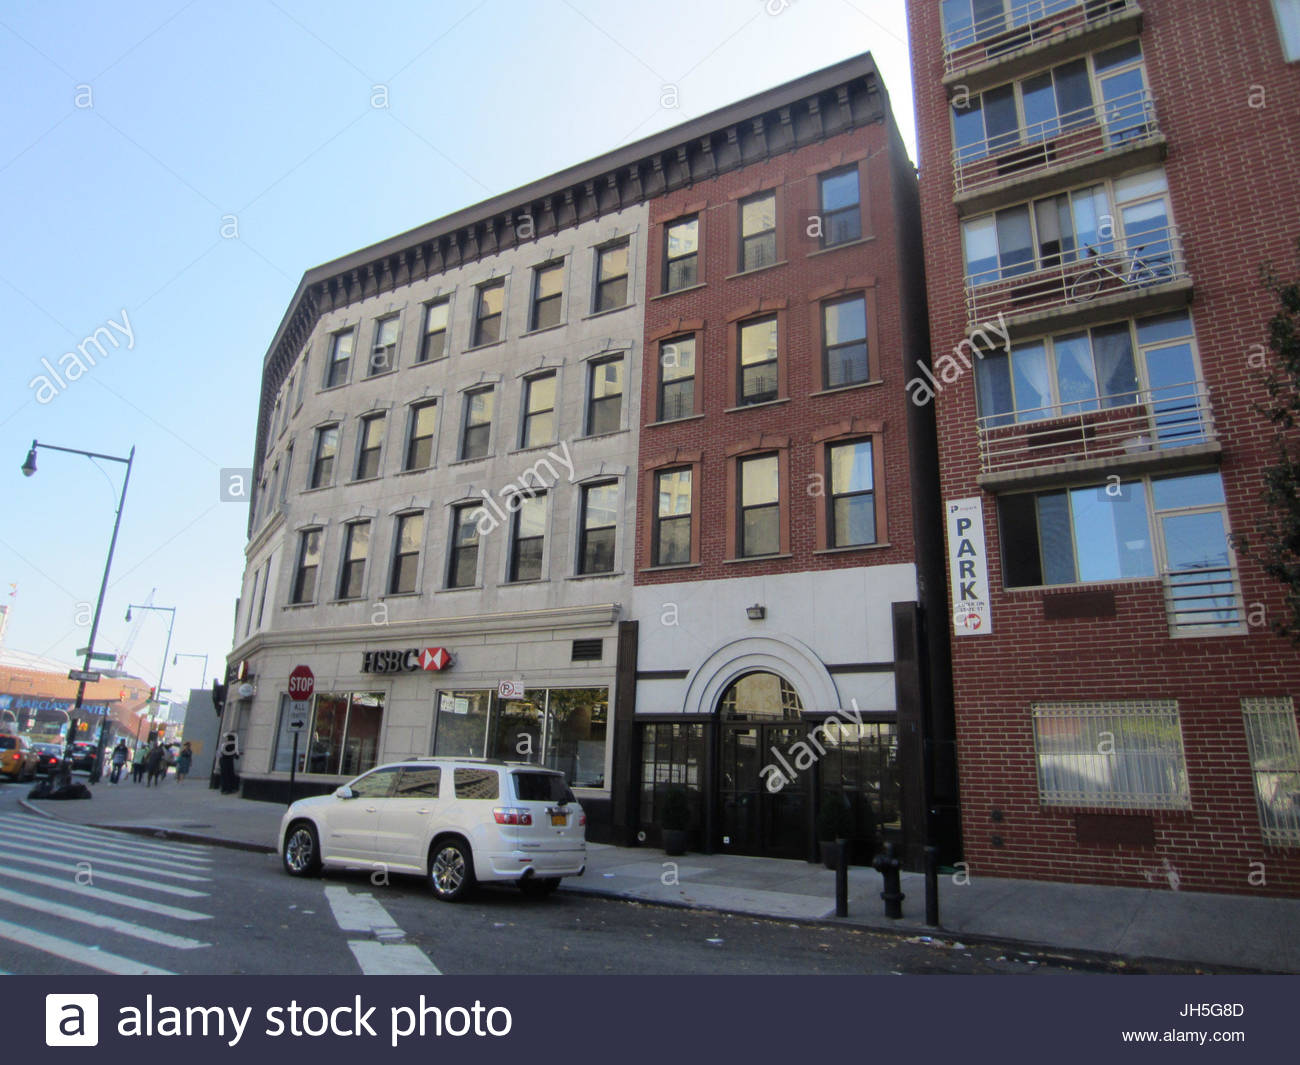 Jay zs old home the brooklyn address that jay z names as his jay zs old home the brooklyn address that jay z names as his stash spot in the blueprint 3 track empire state of mind he raps i used to cop in harlem malvernweather Image collections